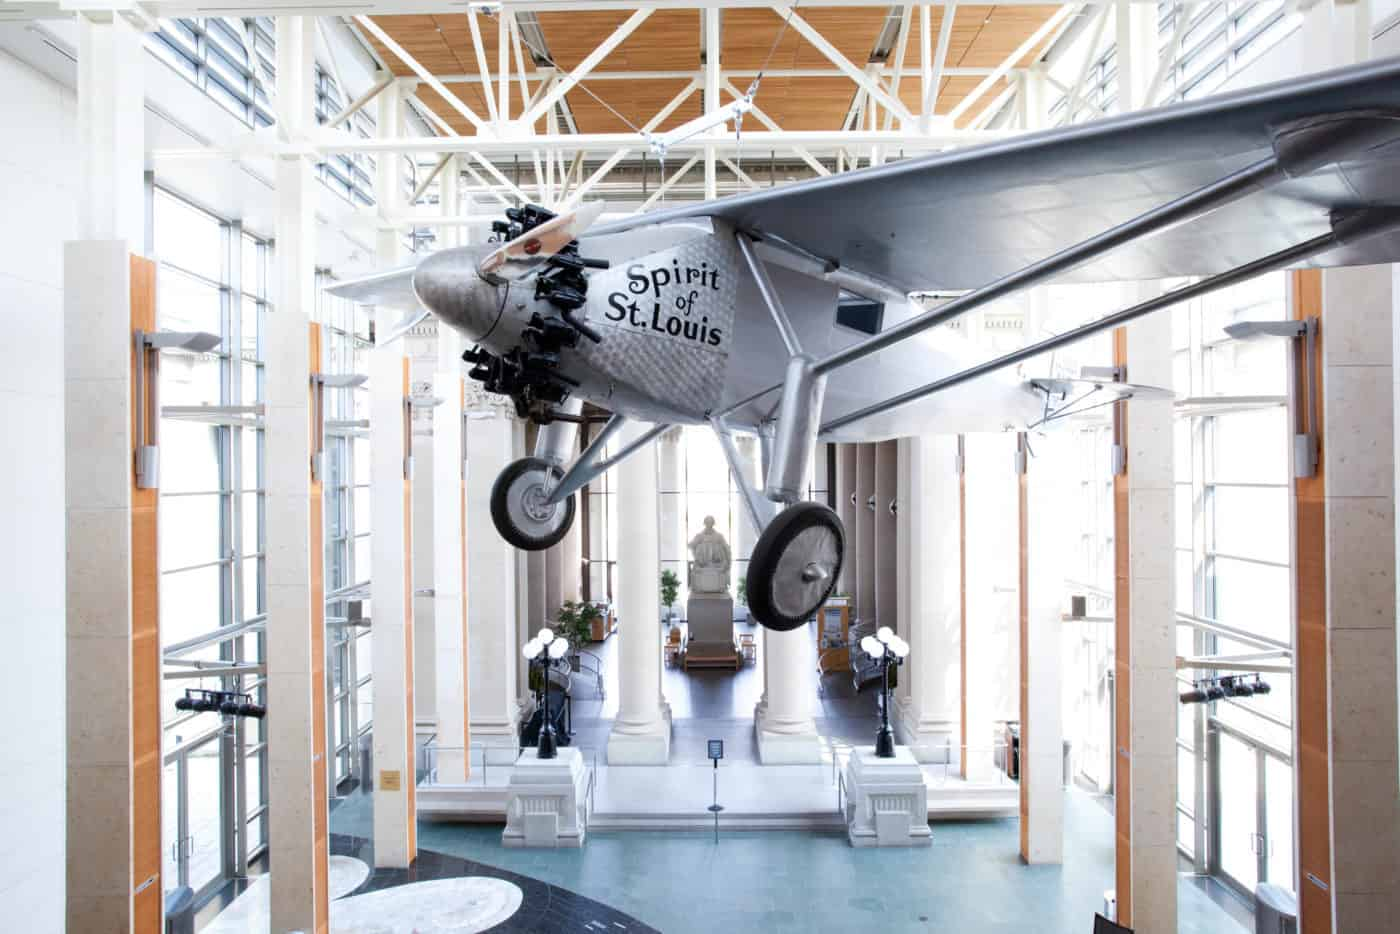 Spirit of St. Louis airplane at the free Missouri History Museum in St. Louis